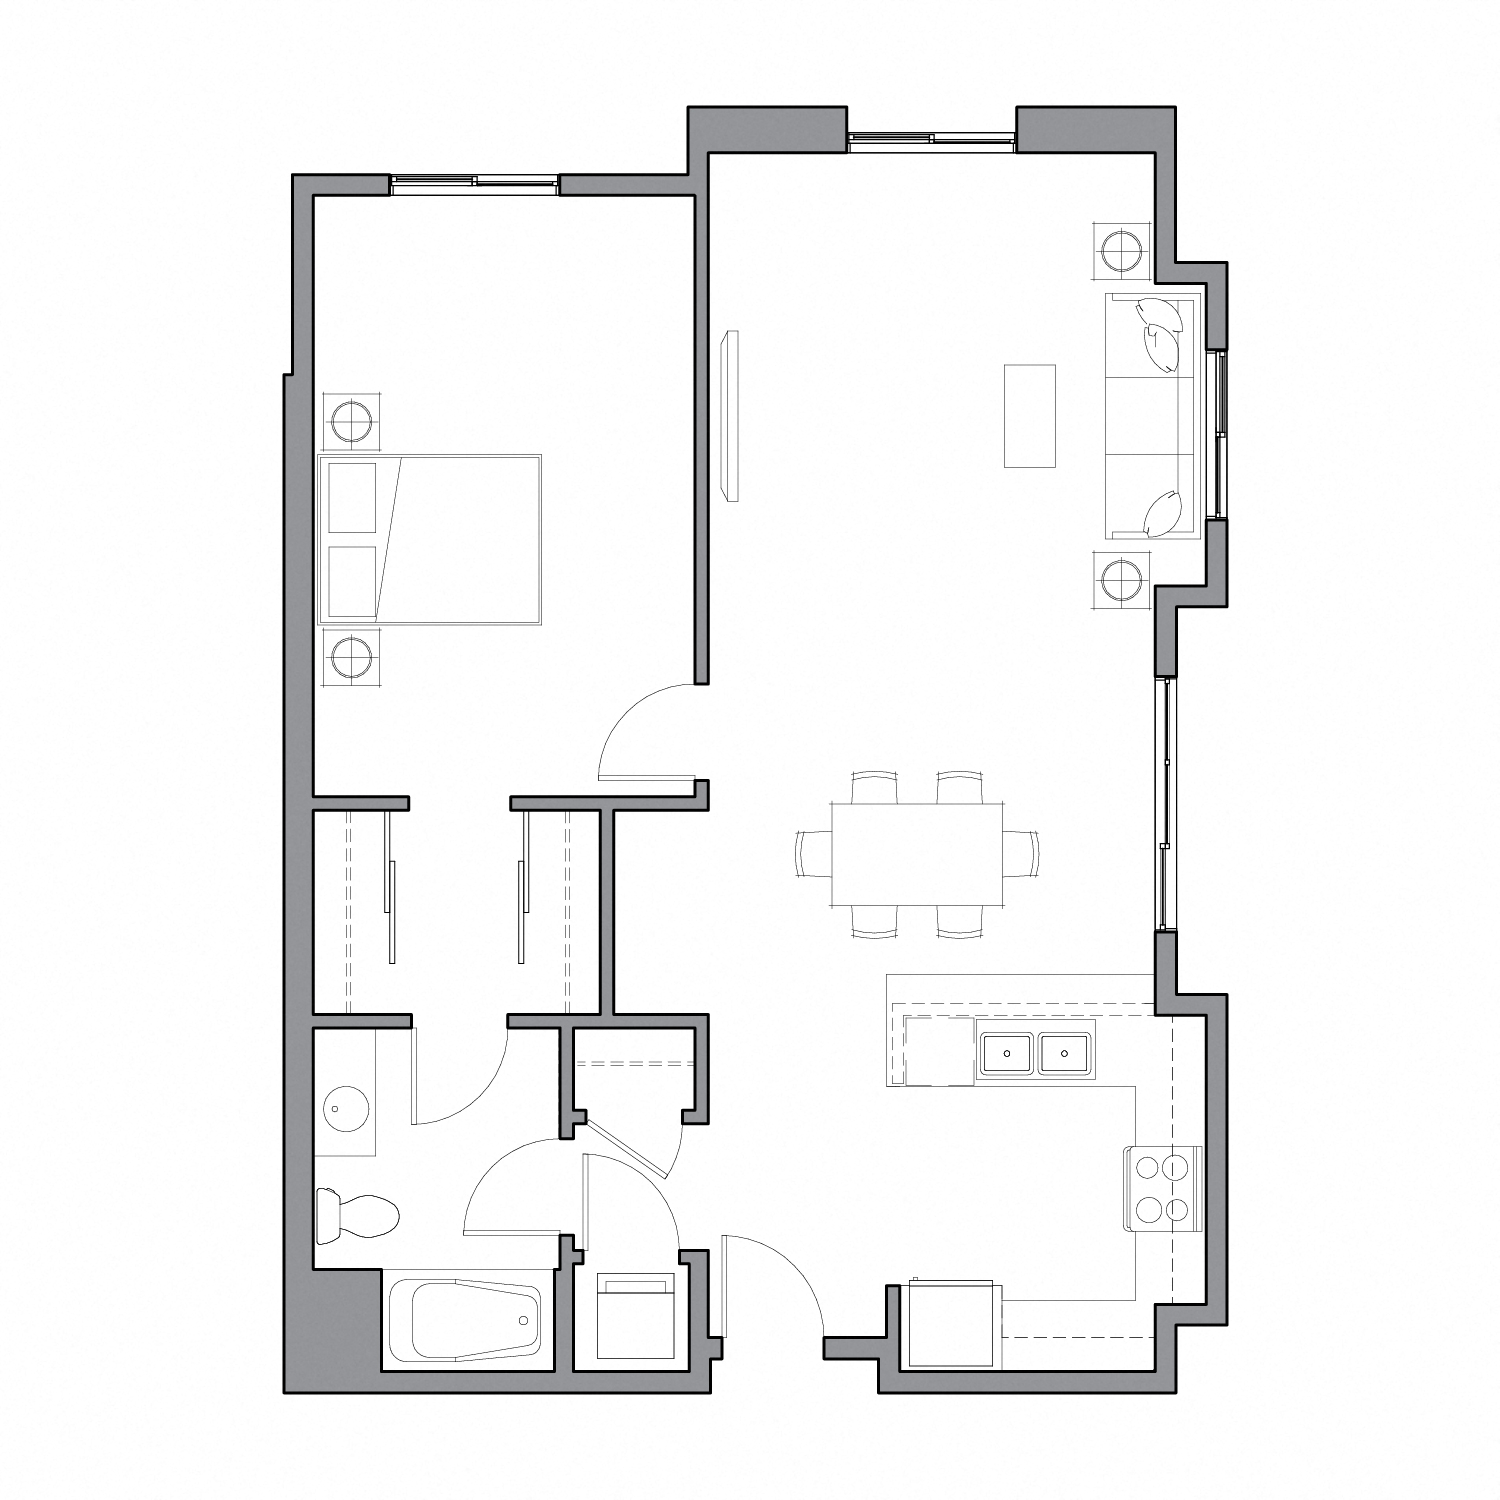 Floor plan diagram with one bedroom, one bathroom, and an open kitchen dining and living space